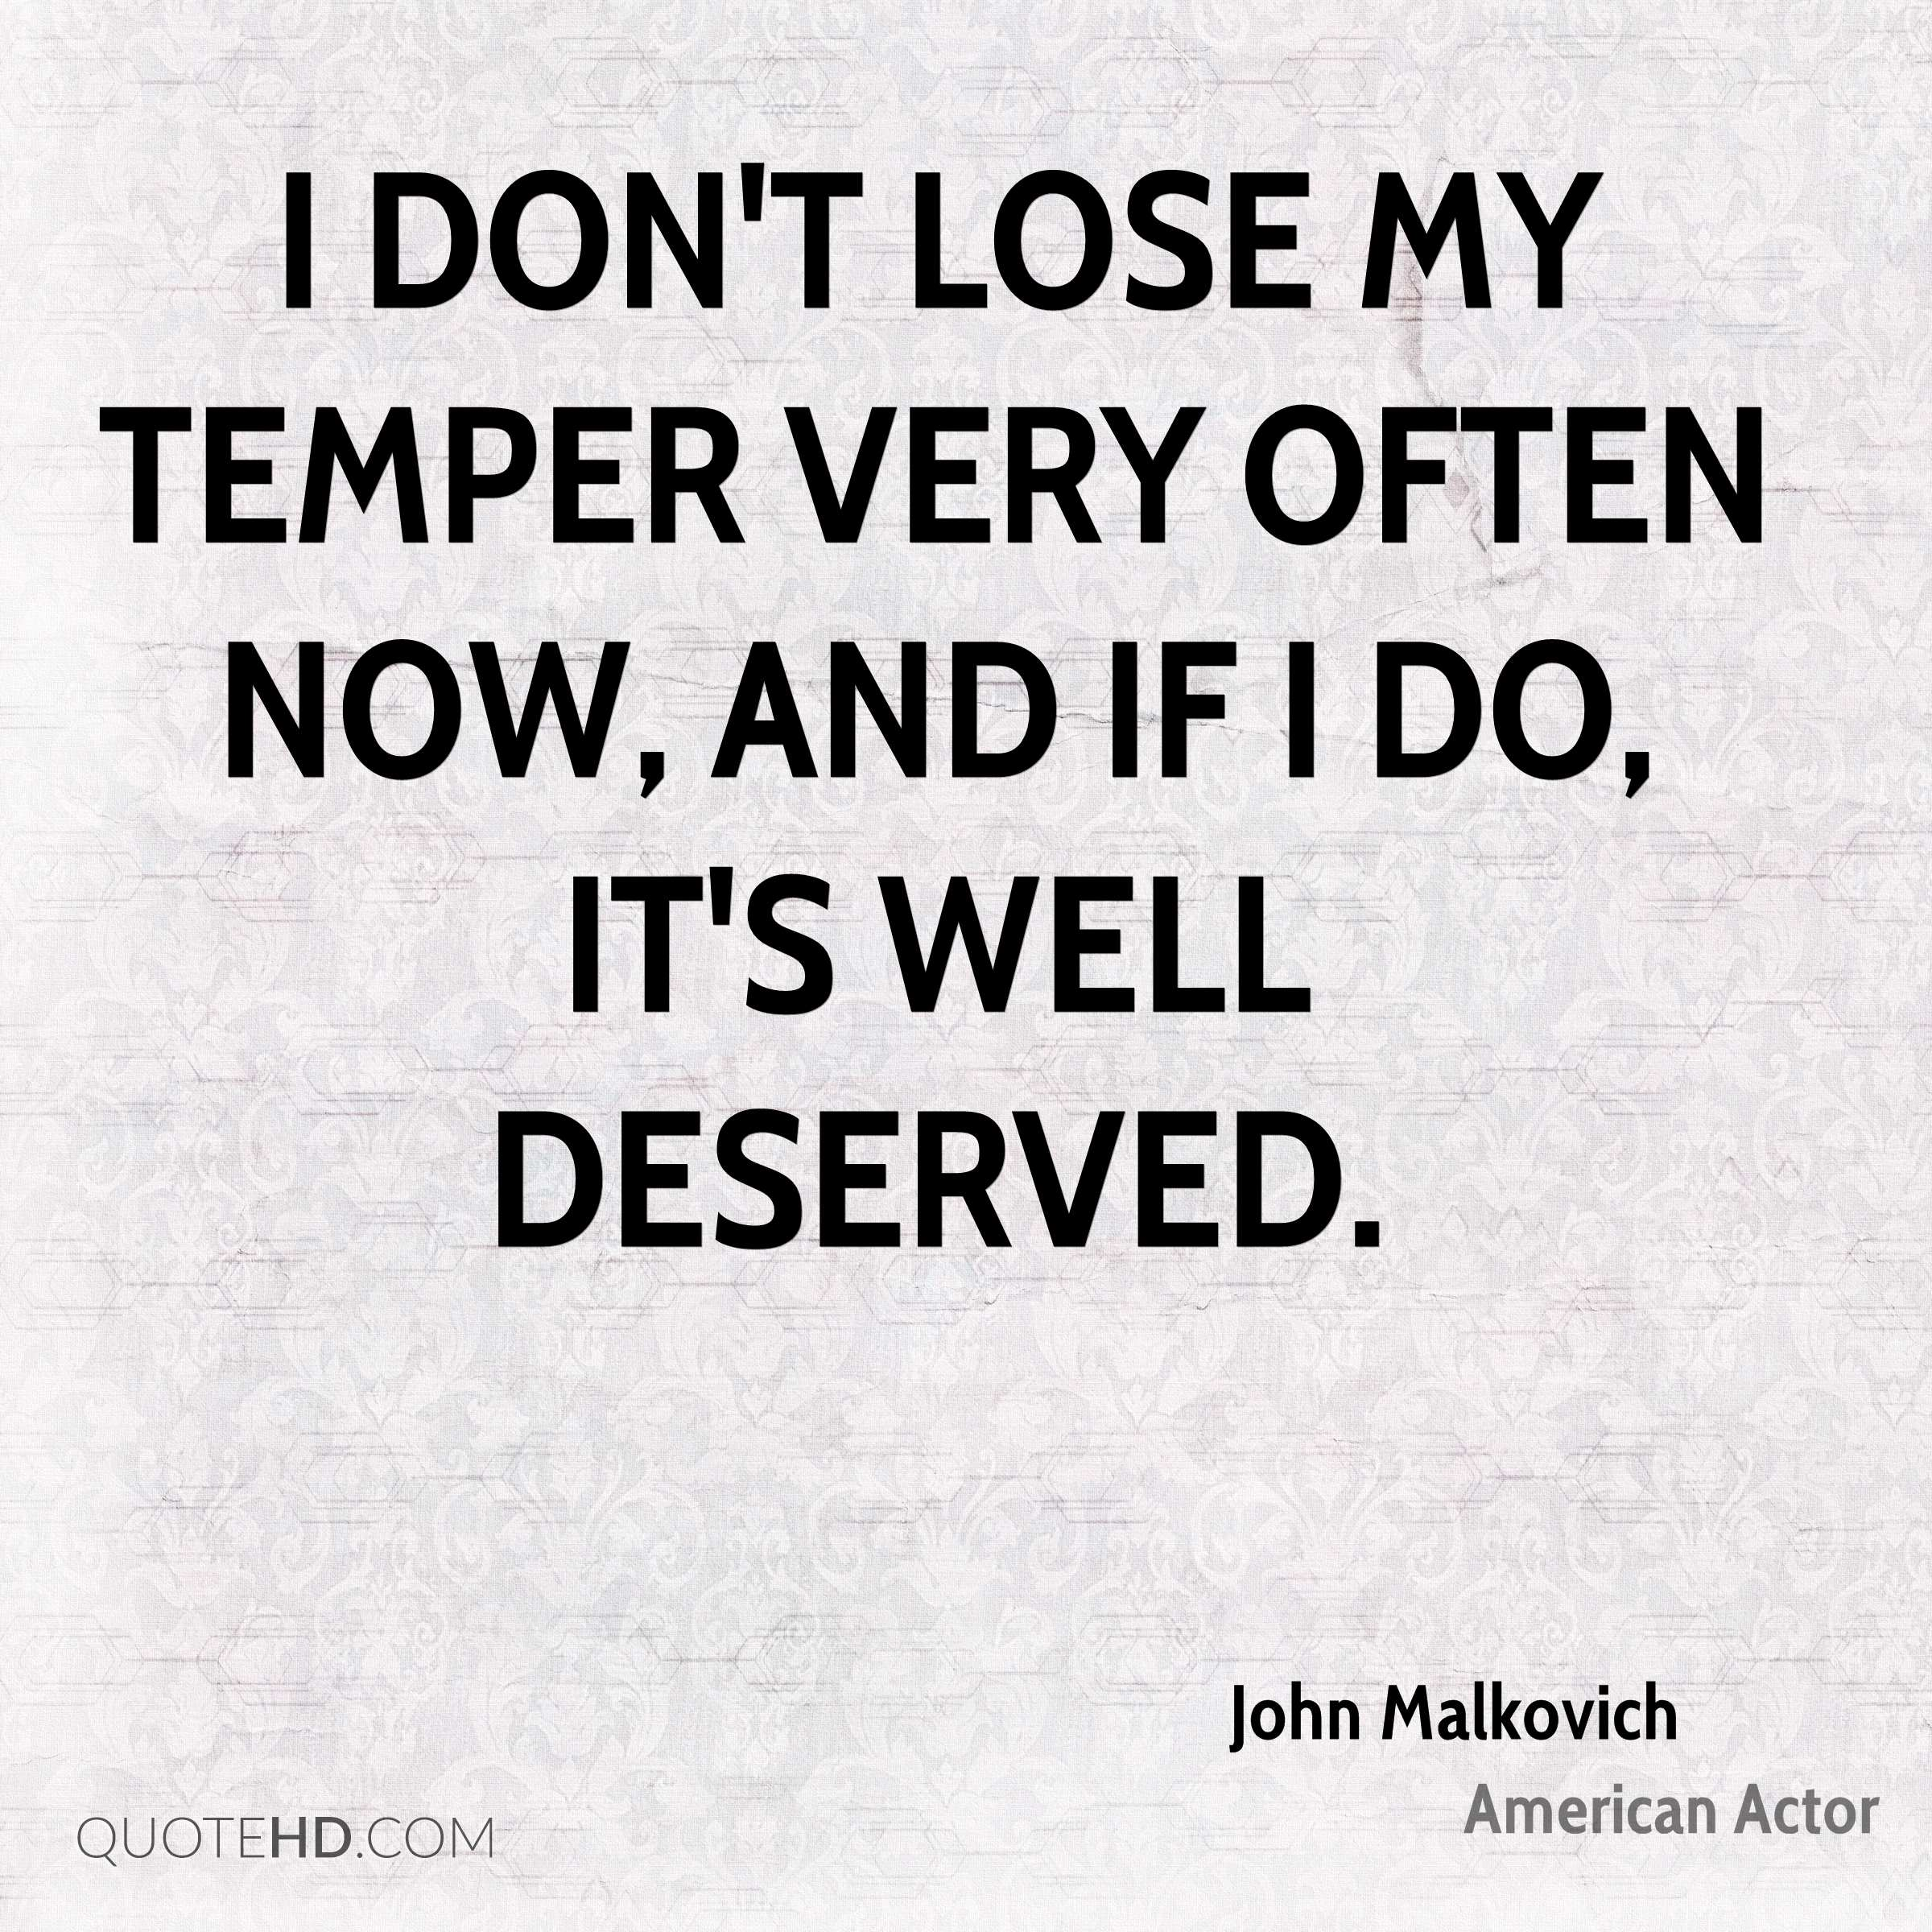 I don't lose my temper very often now, and if I do, it's well deserved.